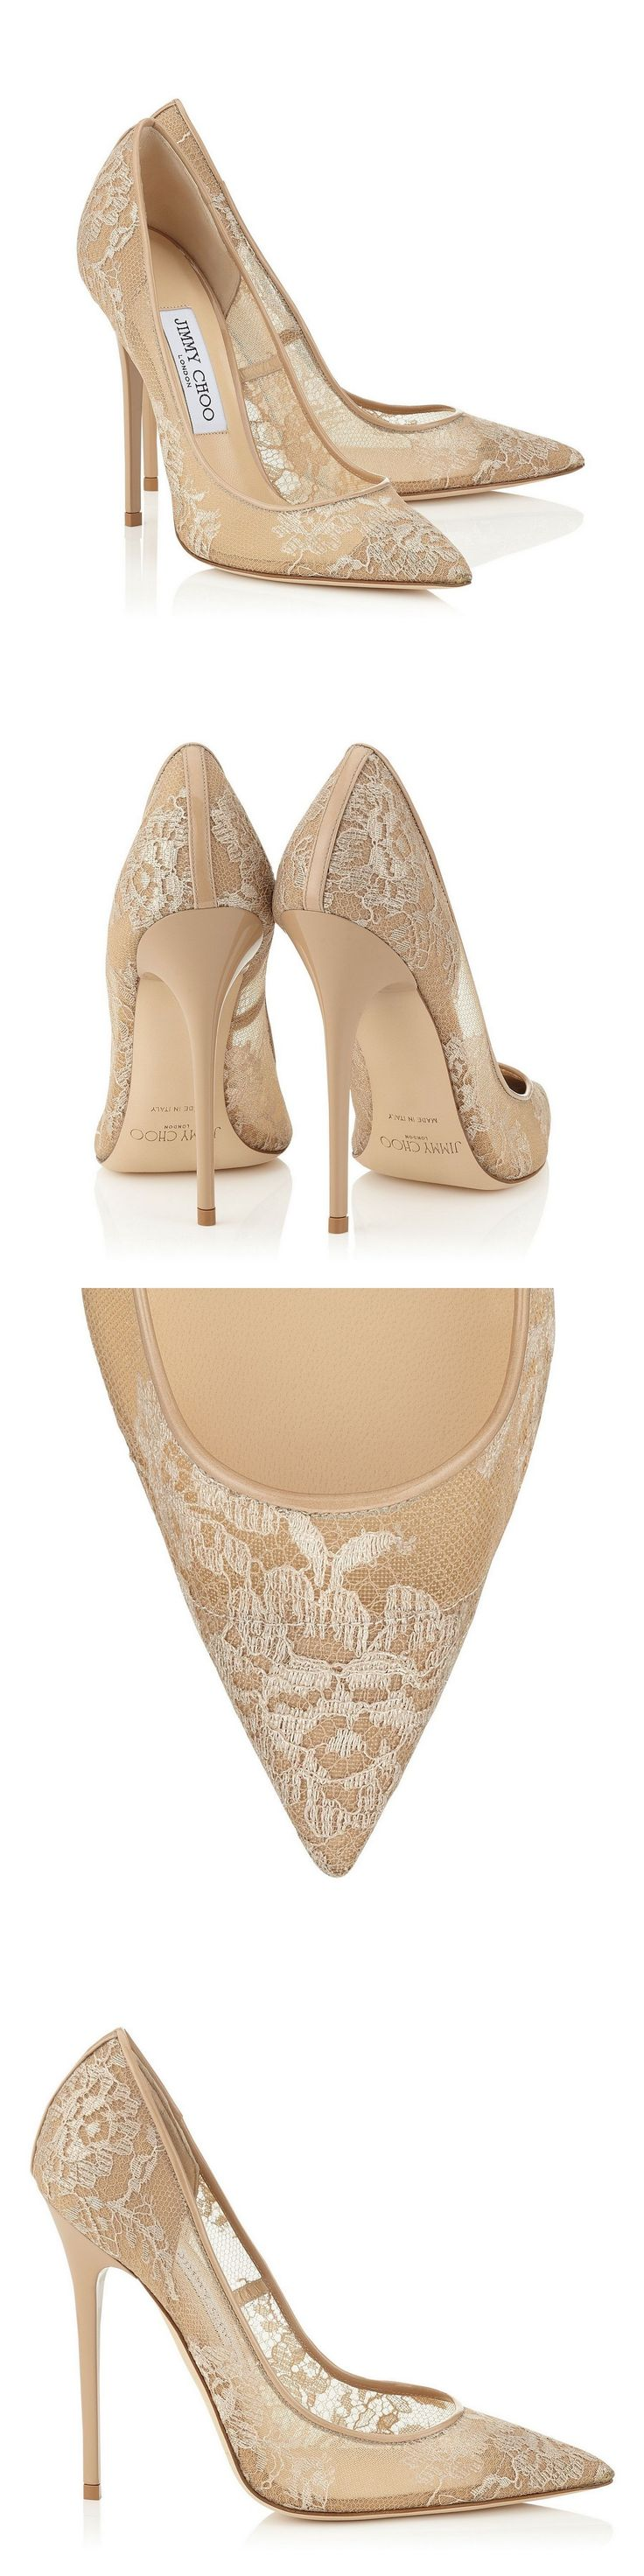 Nude Patent Pointed Heels